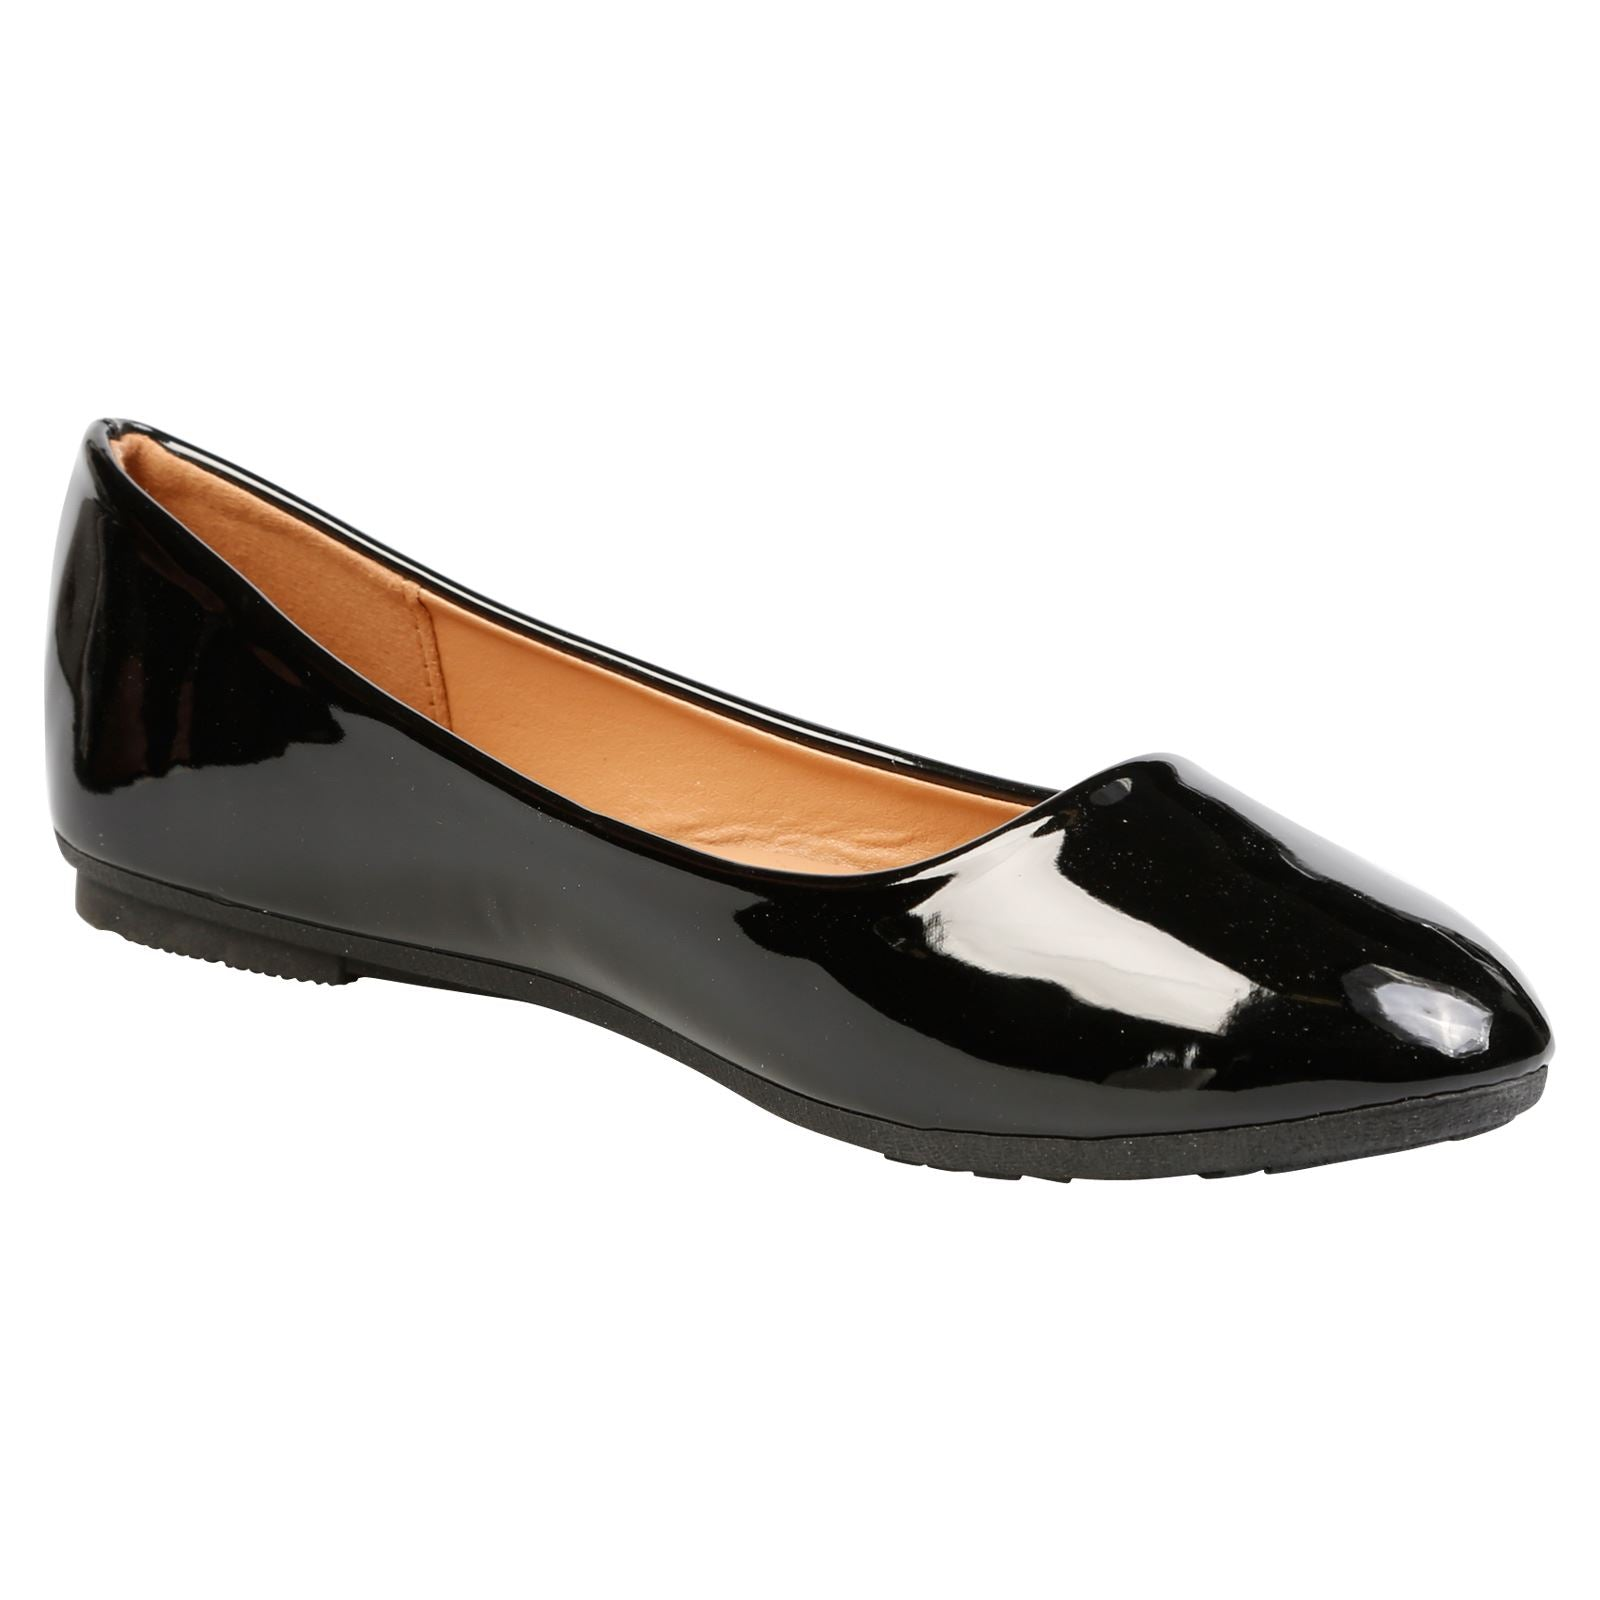 Thelma Ballet Flats in Black Patent